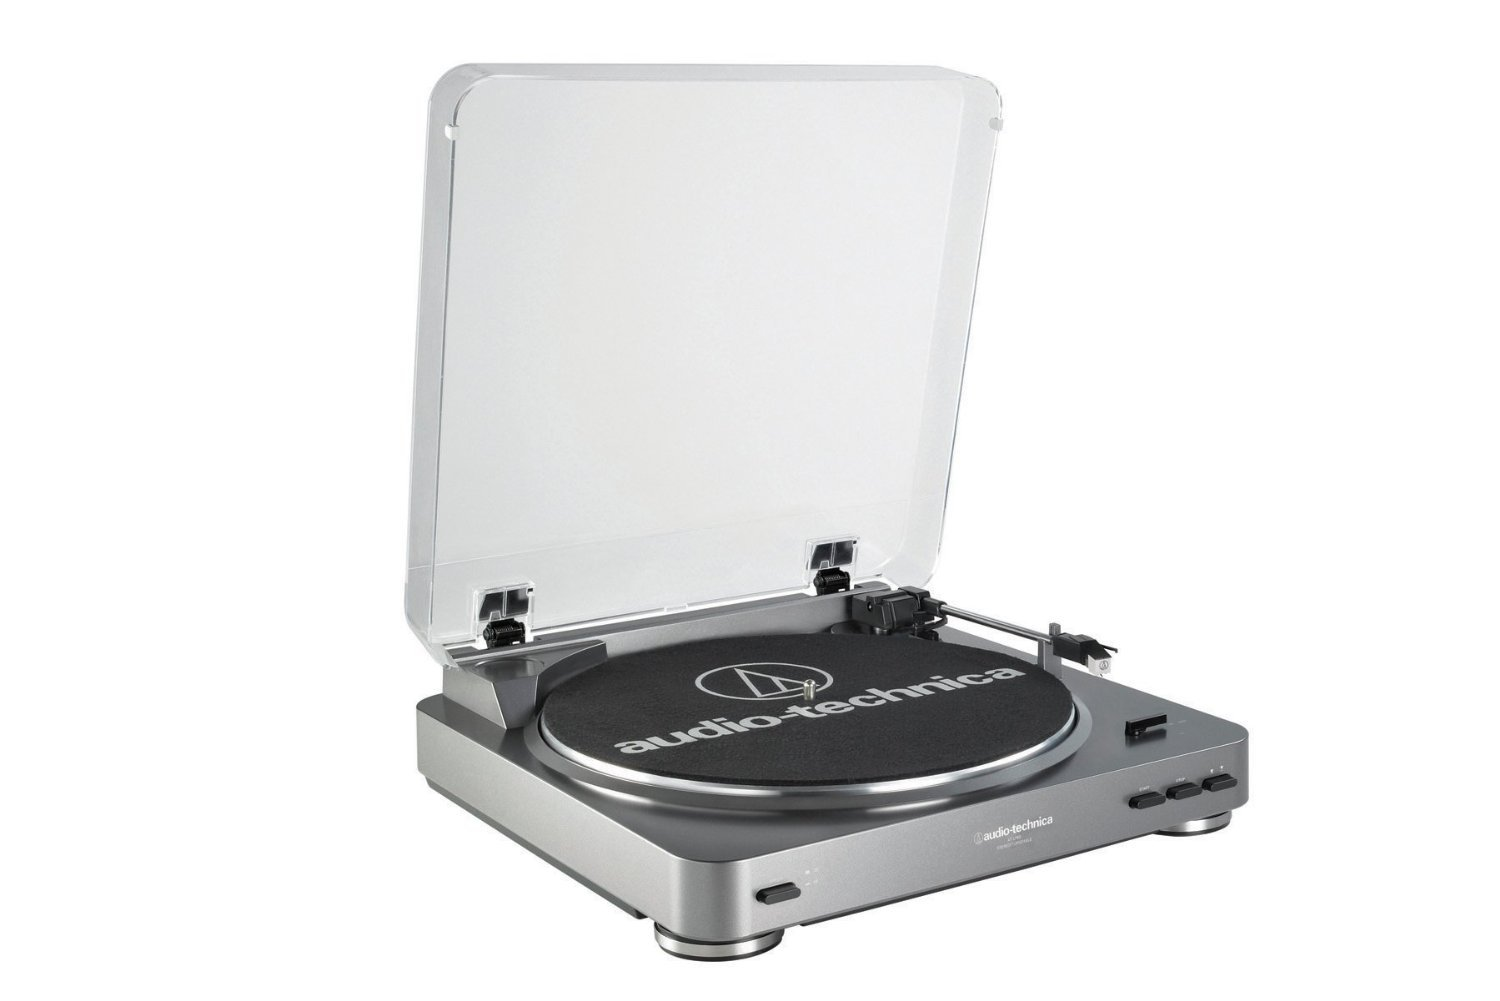 NEW! Audio Technica AT-LP60 Fully Automatic Belt Driven Turntable!